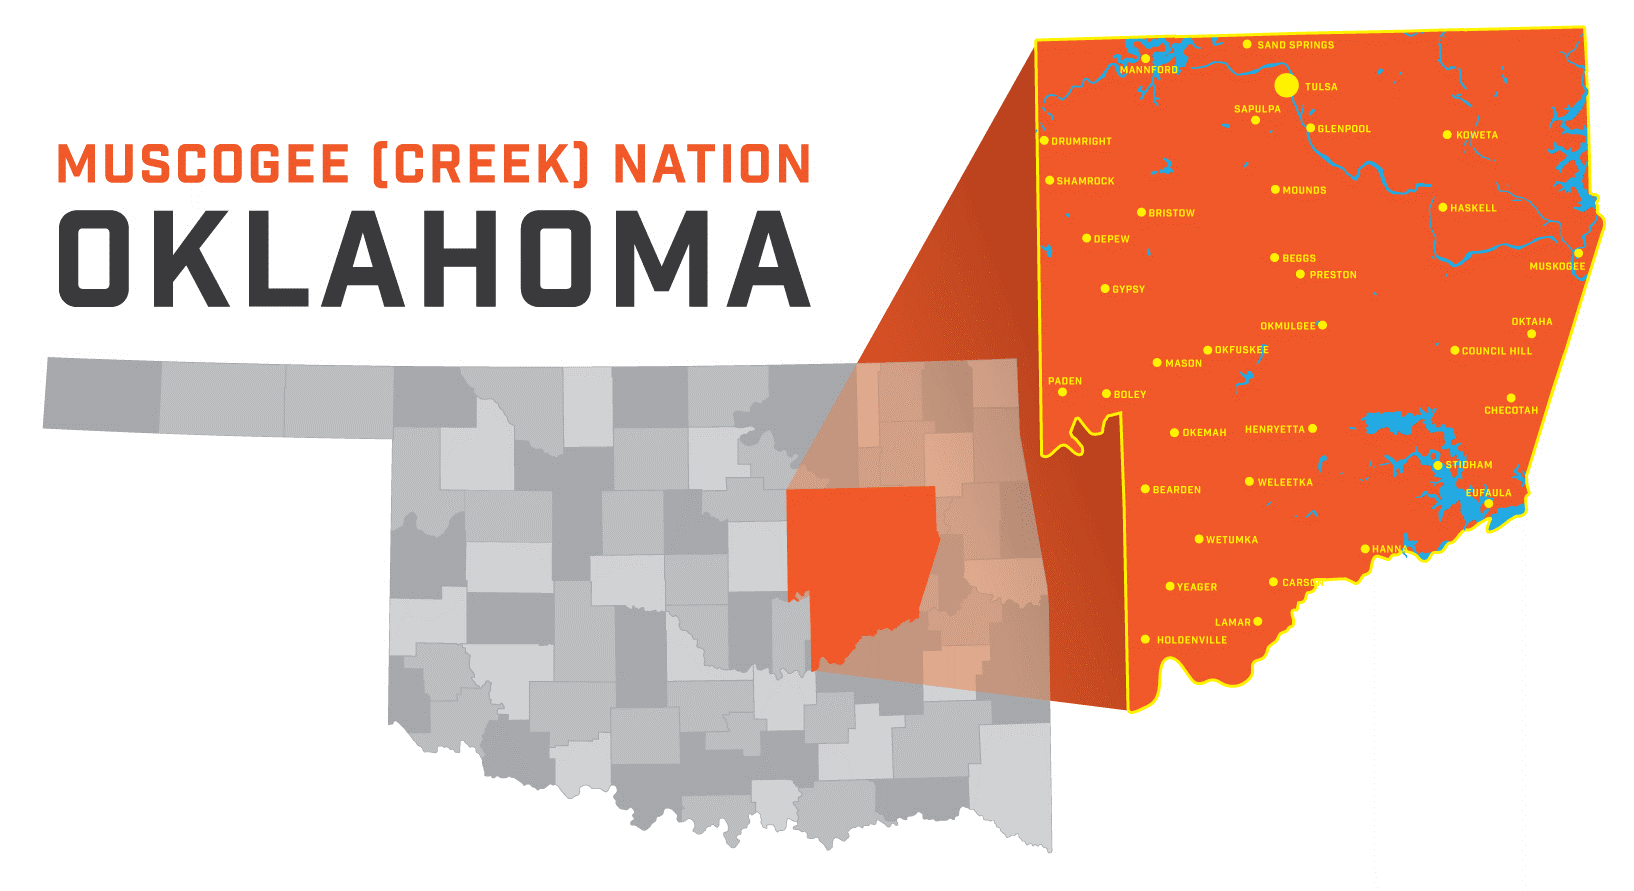 Muscogee Oklahoma nation map